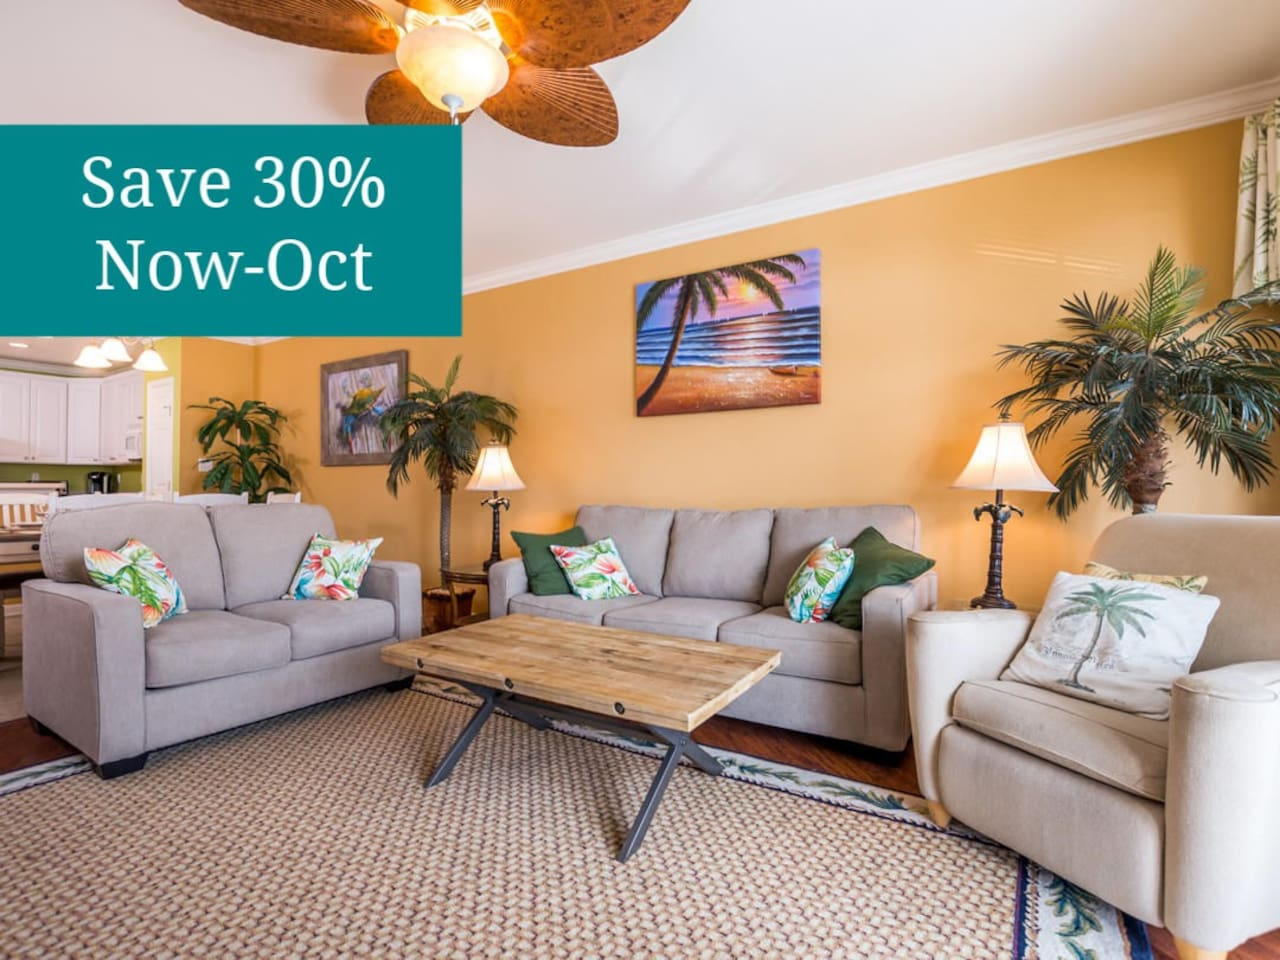 Rates Reduced through October